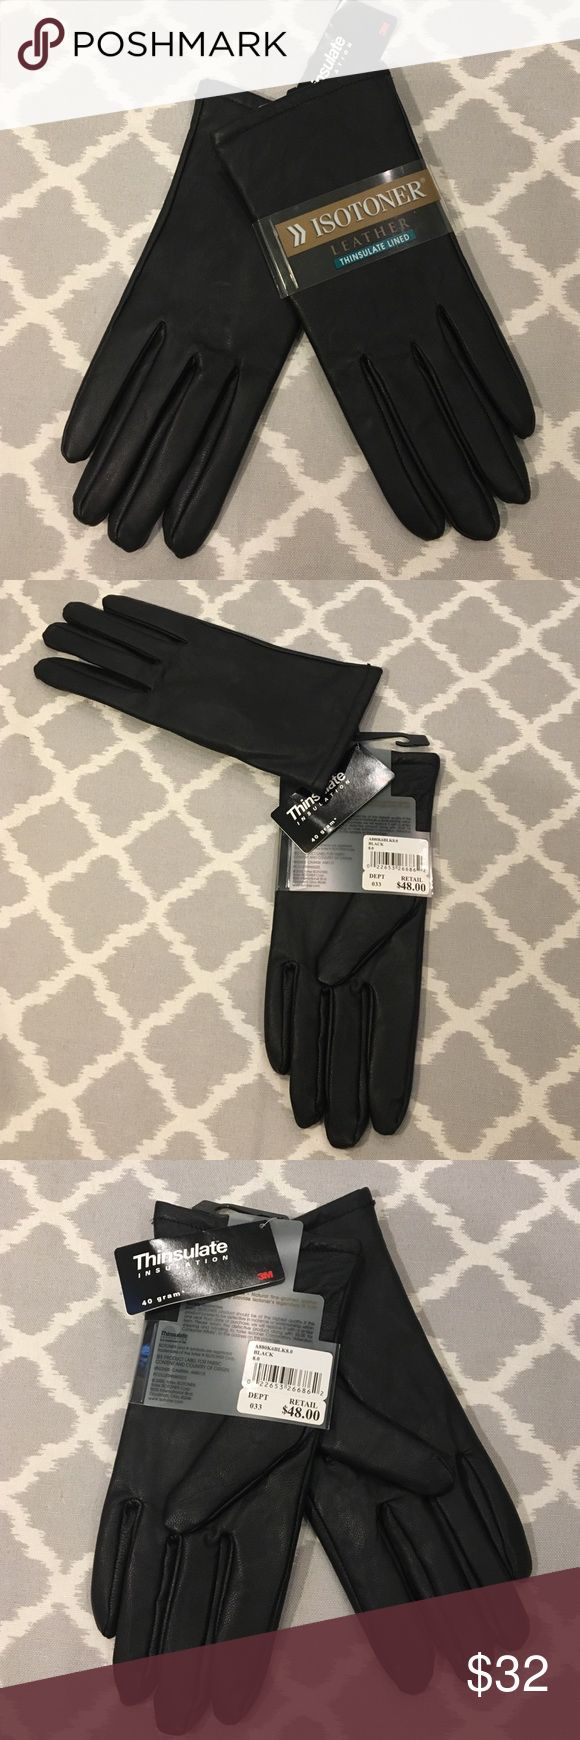 Isotoner womens leather gloves with fleece lining - Isotoner Black Leather Thinsulate Lined Gloves Nwt